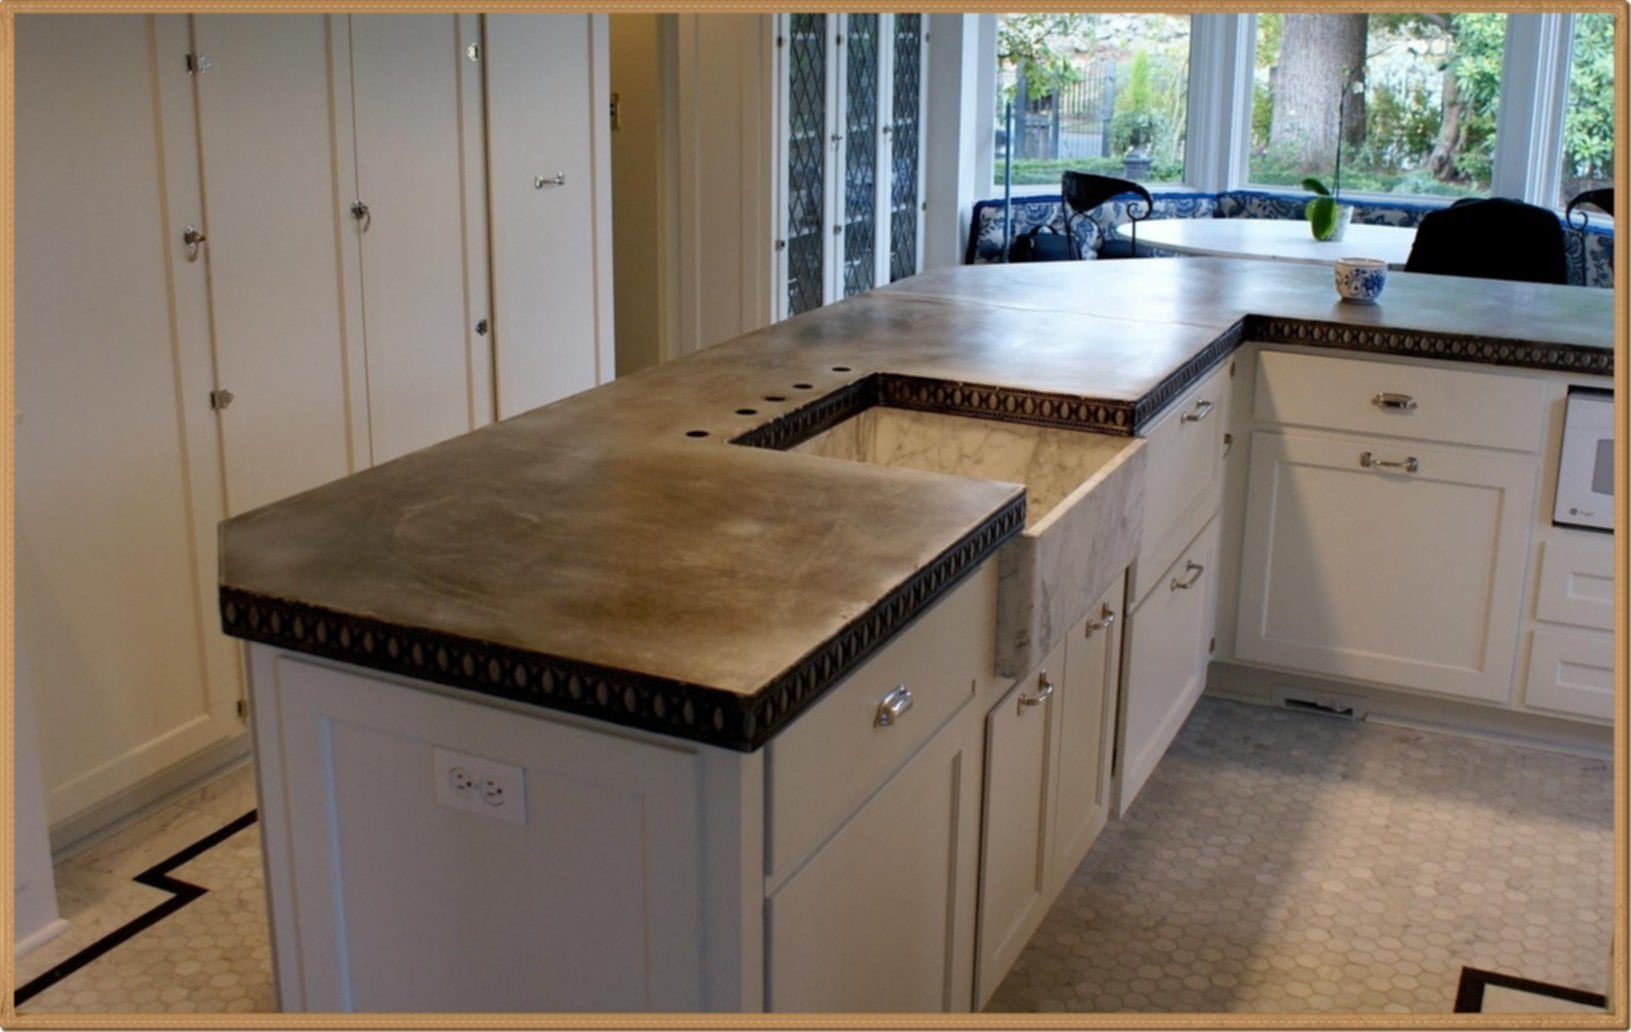 How To Clean Zinc Countertops Diy Zinc Countertops Loccie Better Homes Gardens Ideas